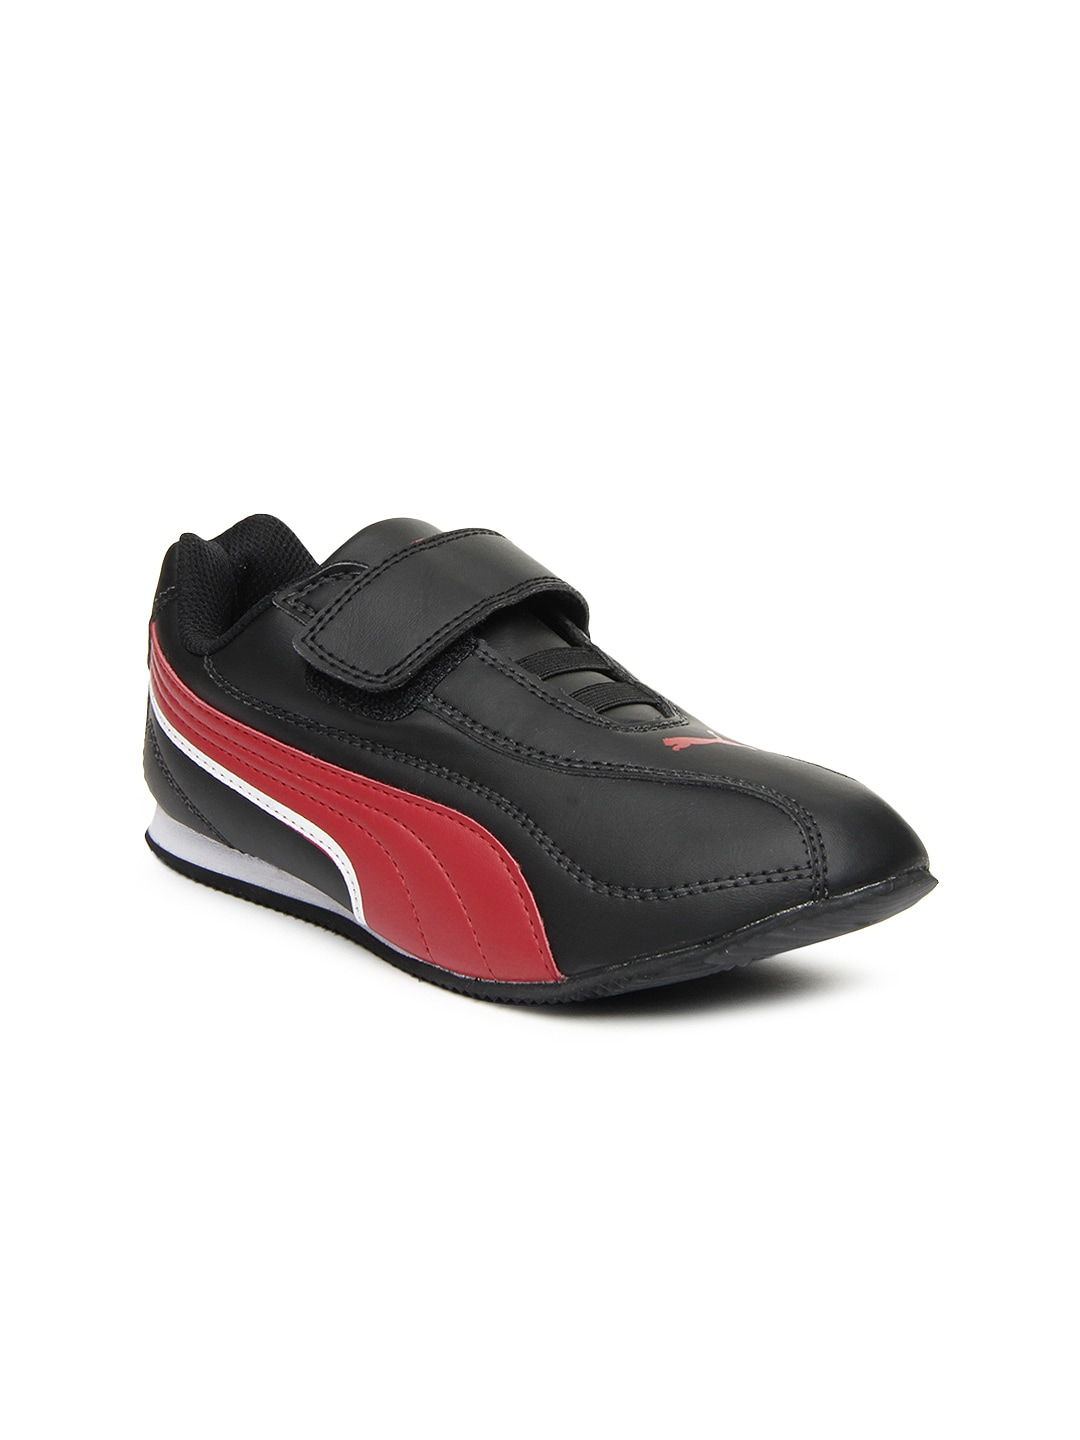 How To Buy Shoes Men Wiki